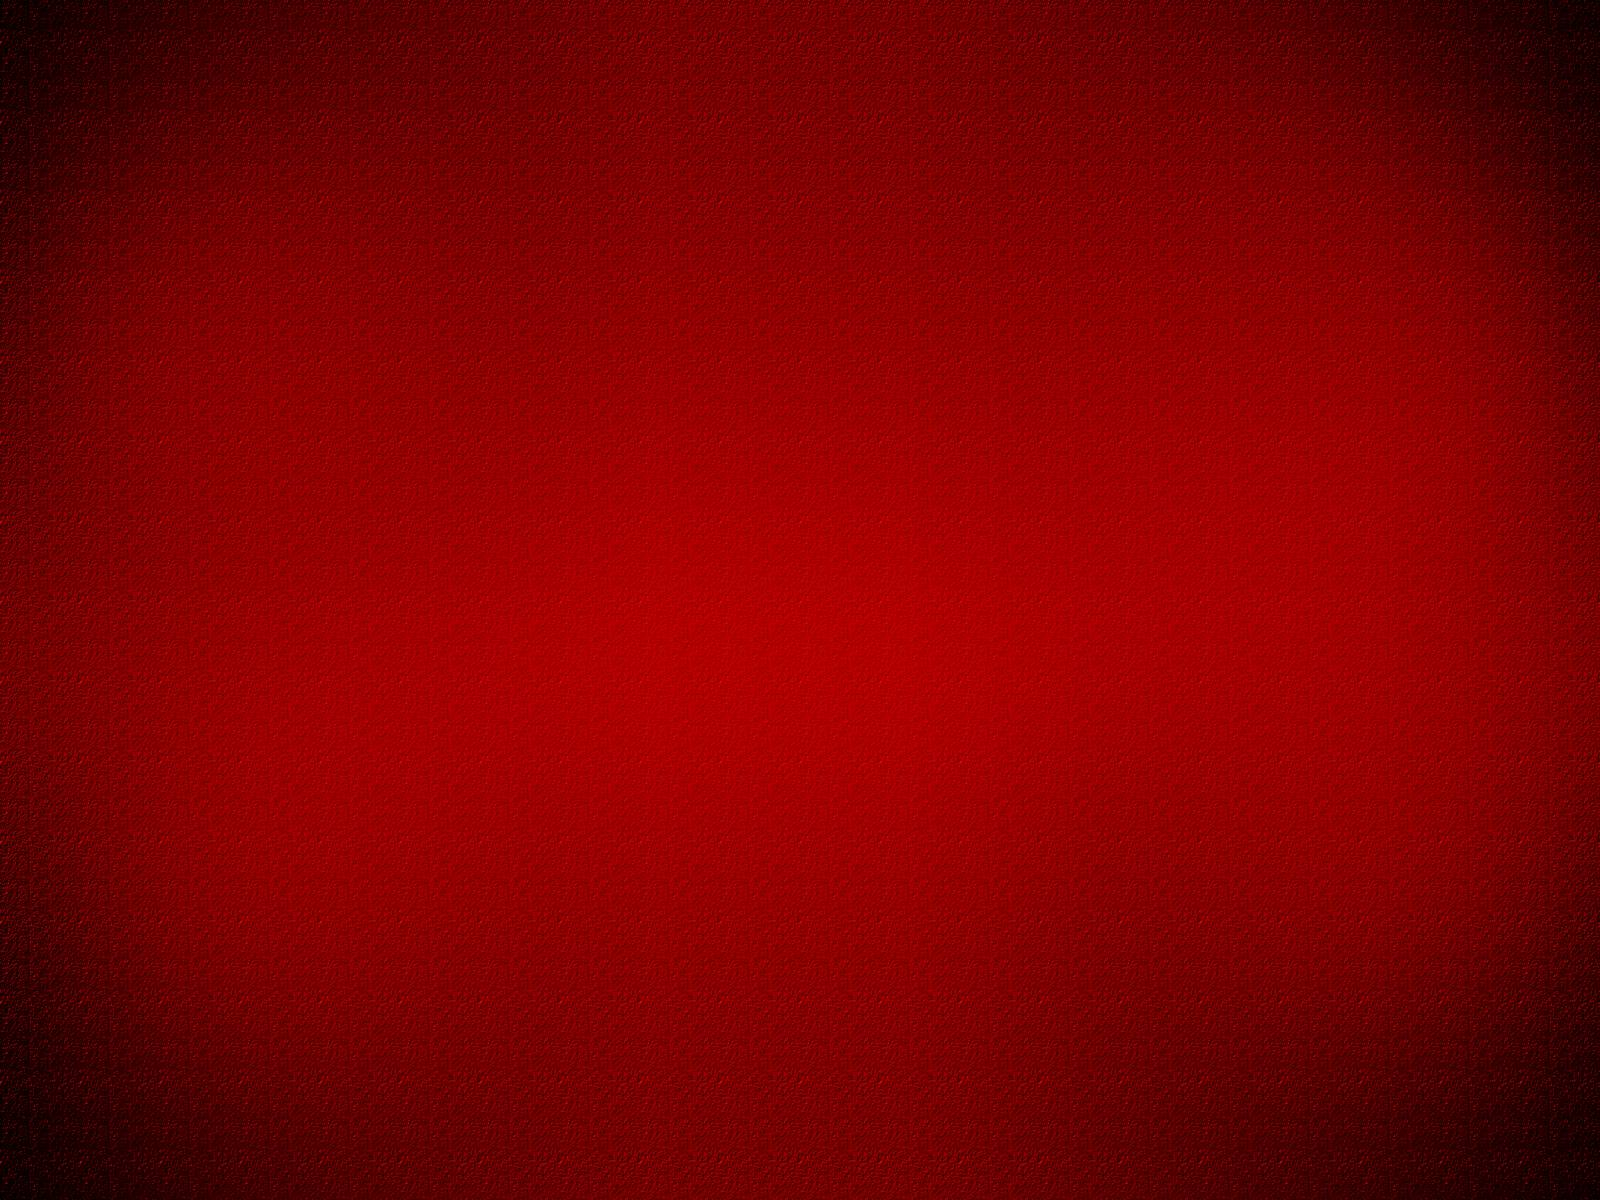 Deep Red Wallpapers 1600x1200